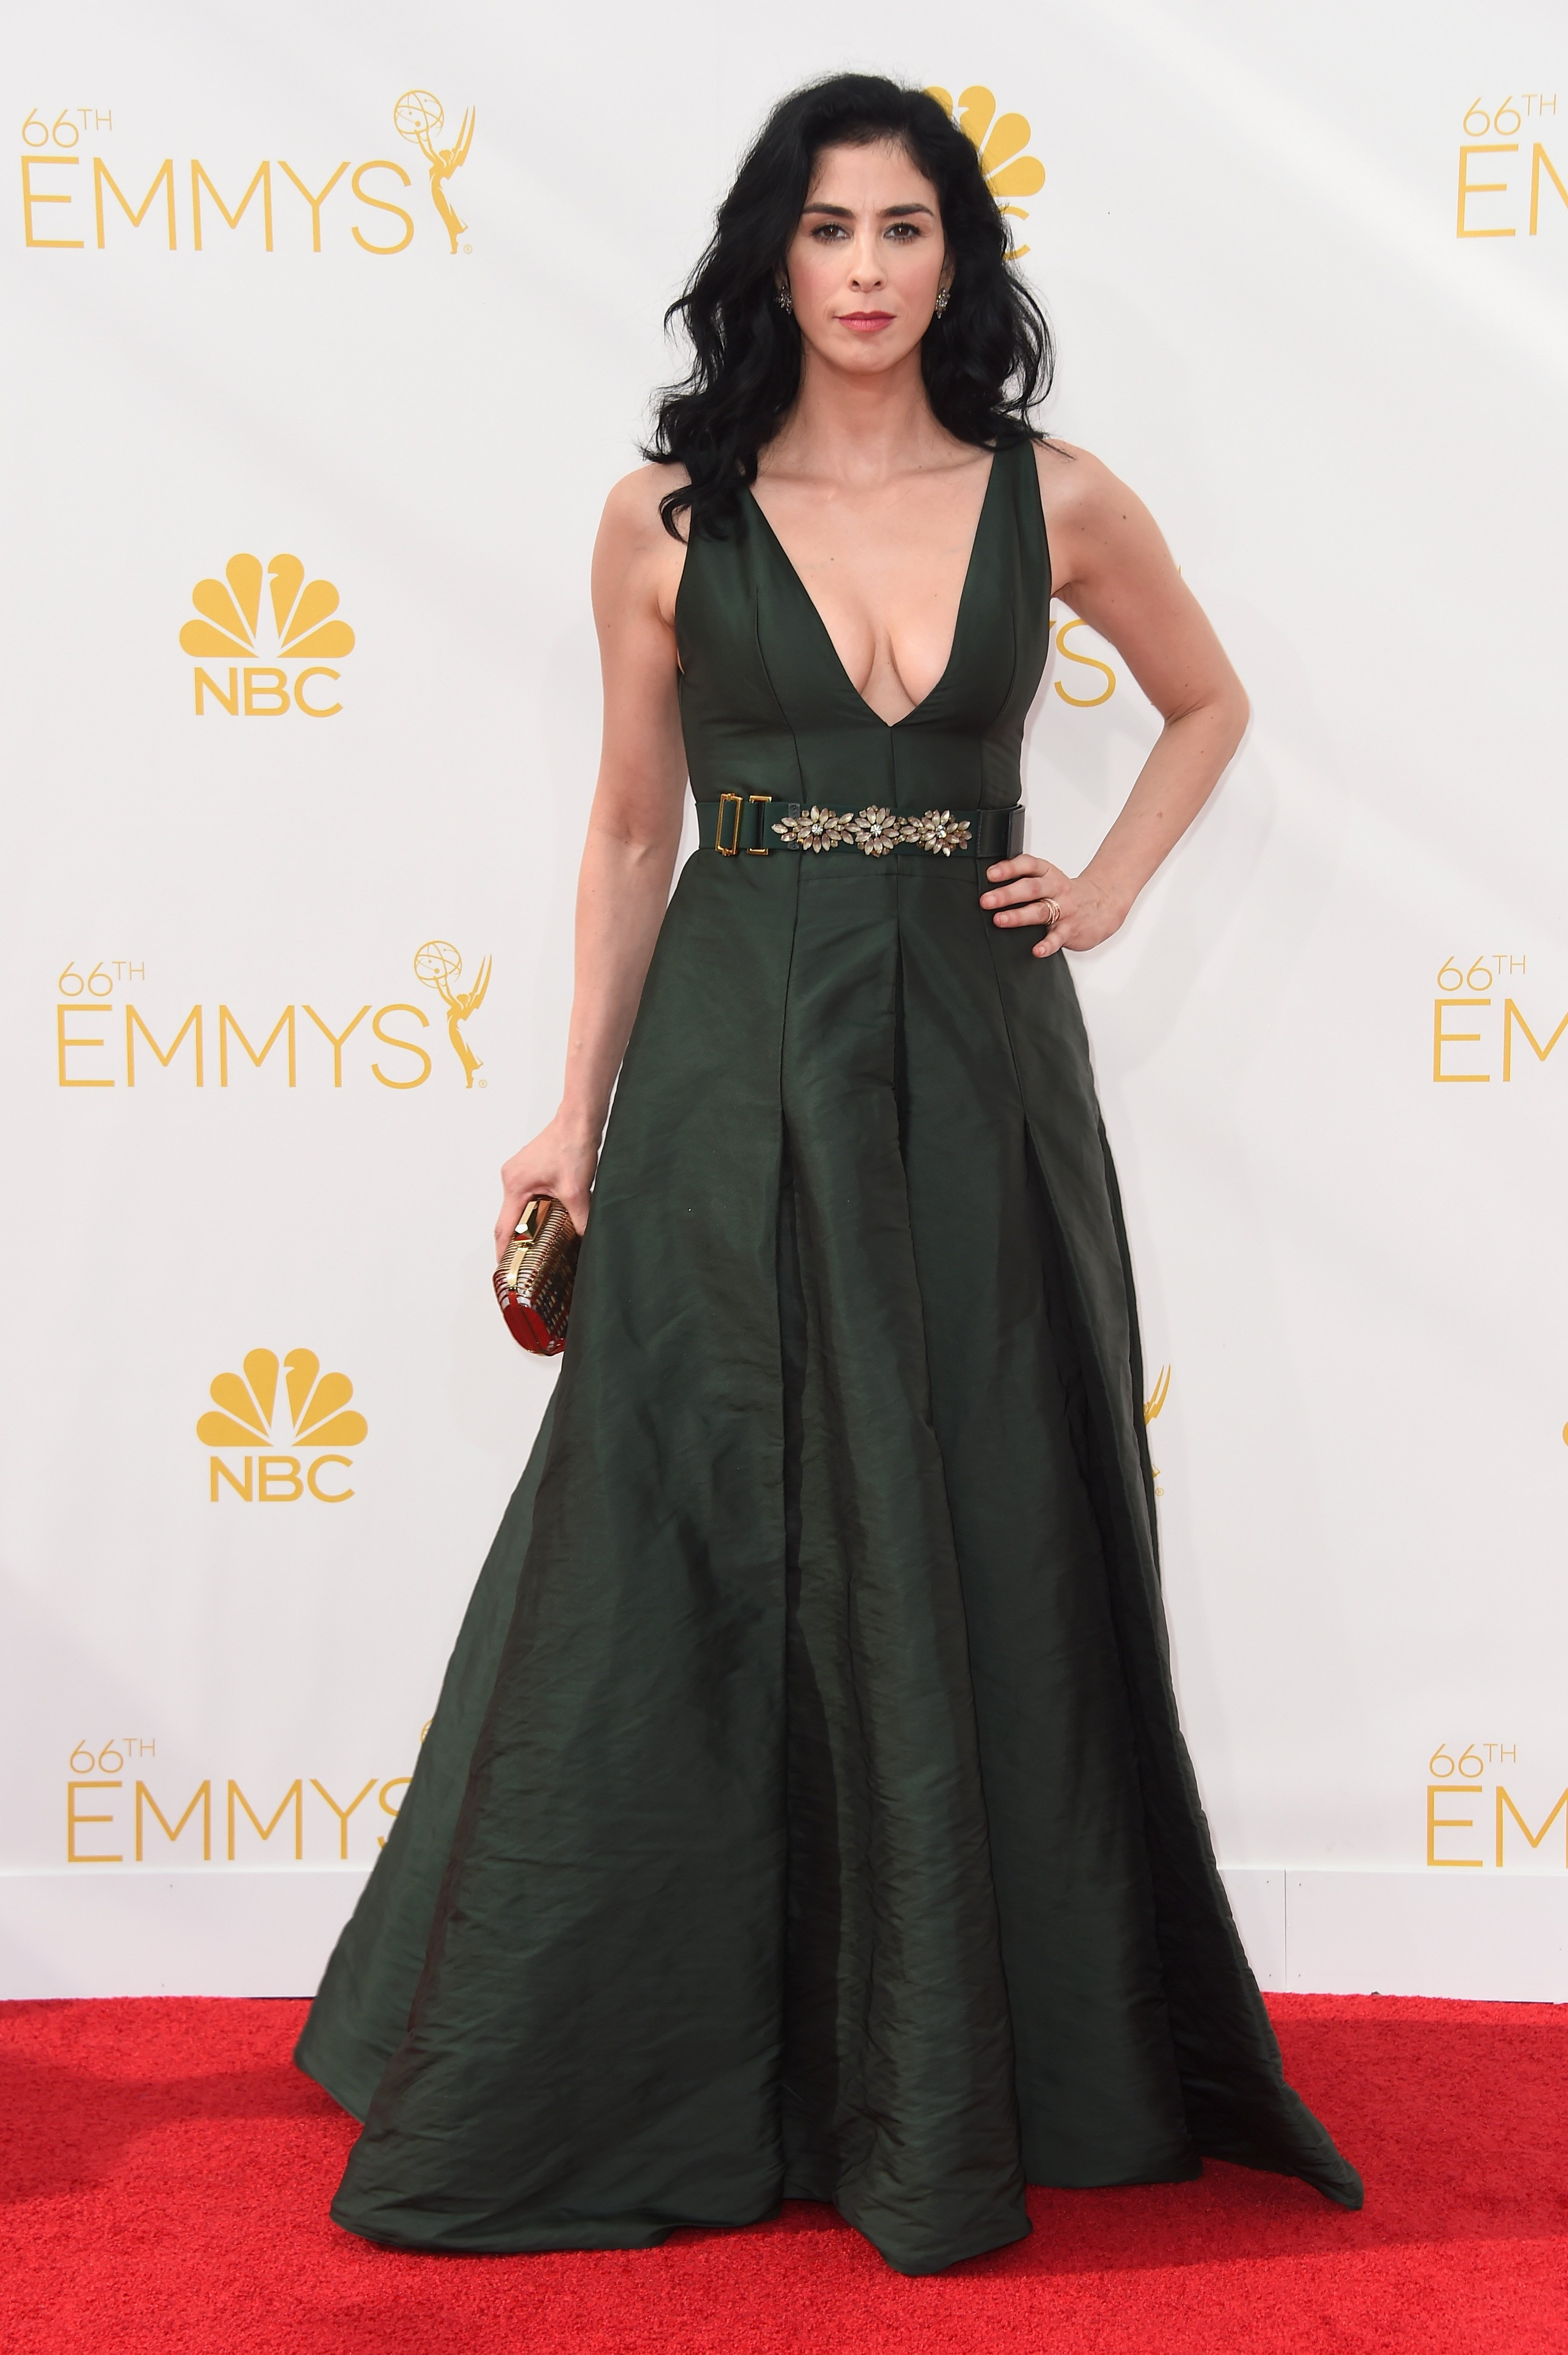 Sarah Silverman attends the 66th Annual Primetime Emmy Awards held at Nokia Theatre L.A. Live on August 25, 2014 in Los Angeles, California.